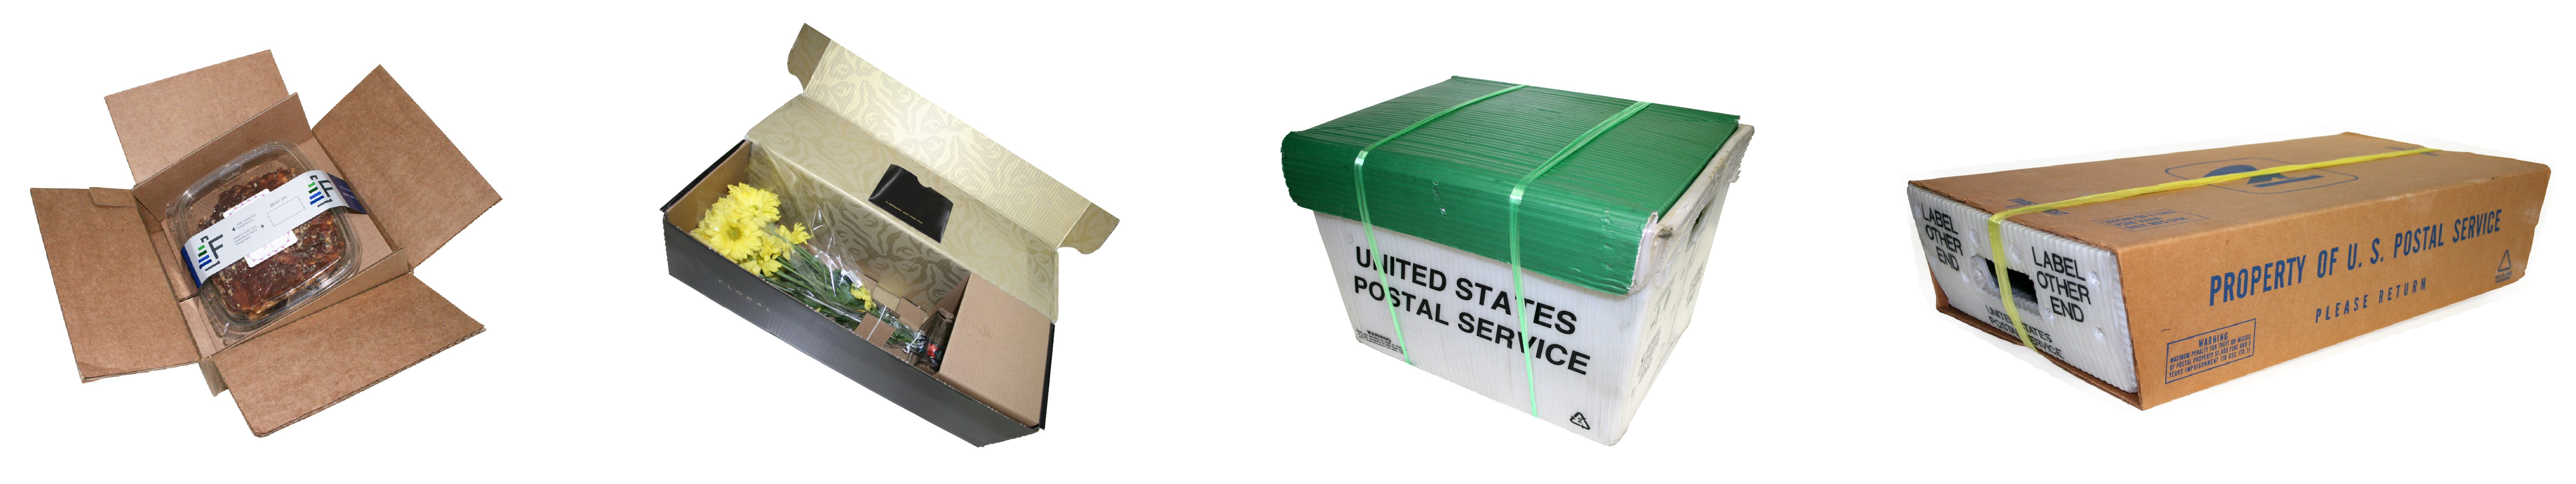 e-commerce packages, mail tub and tray